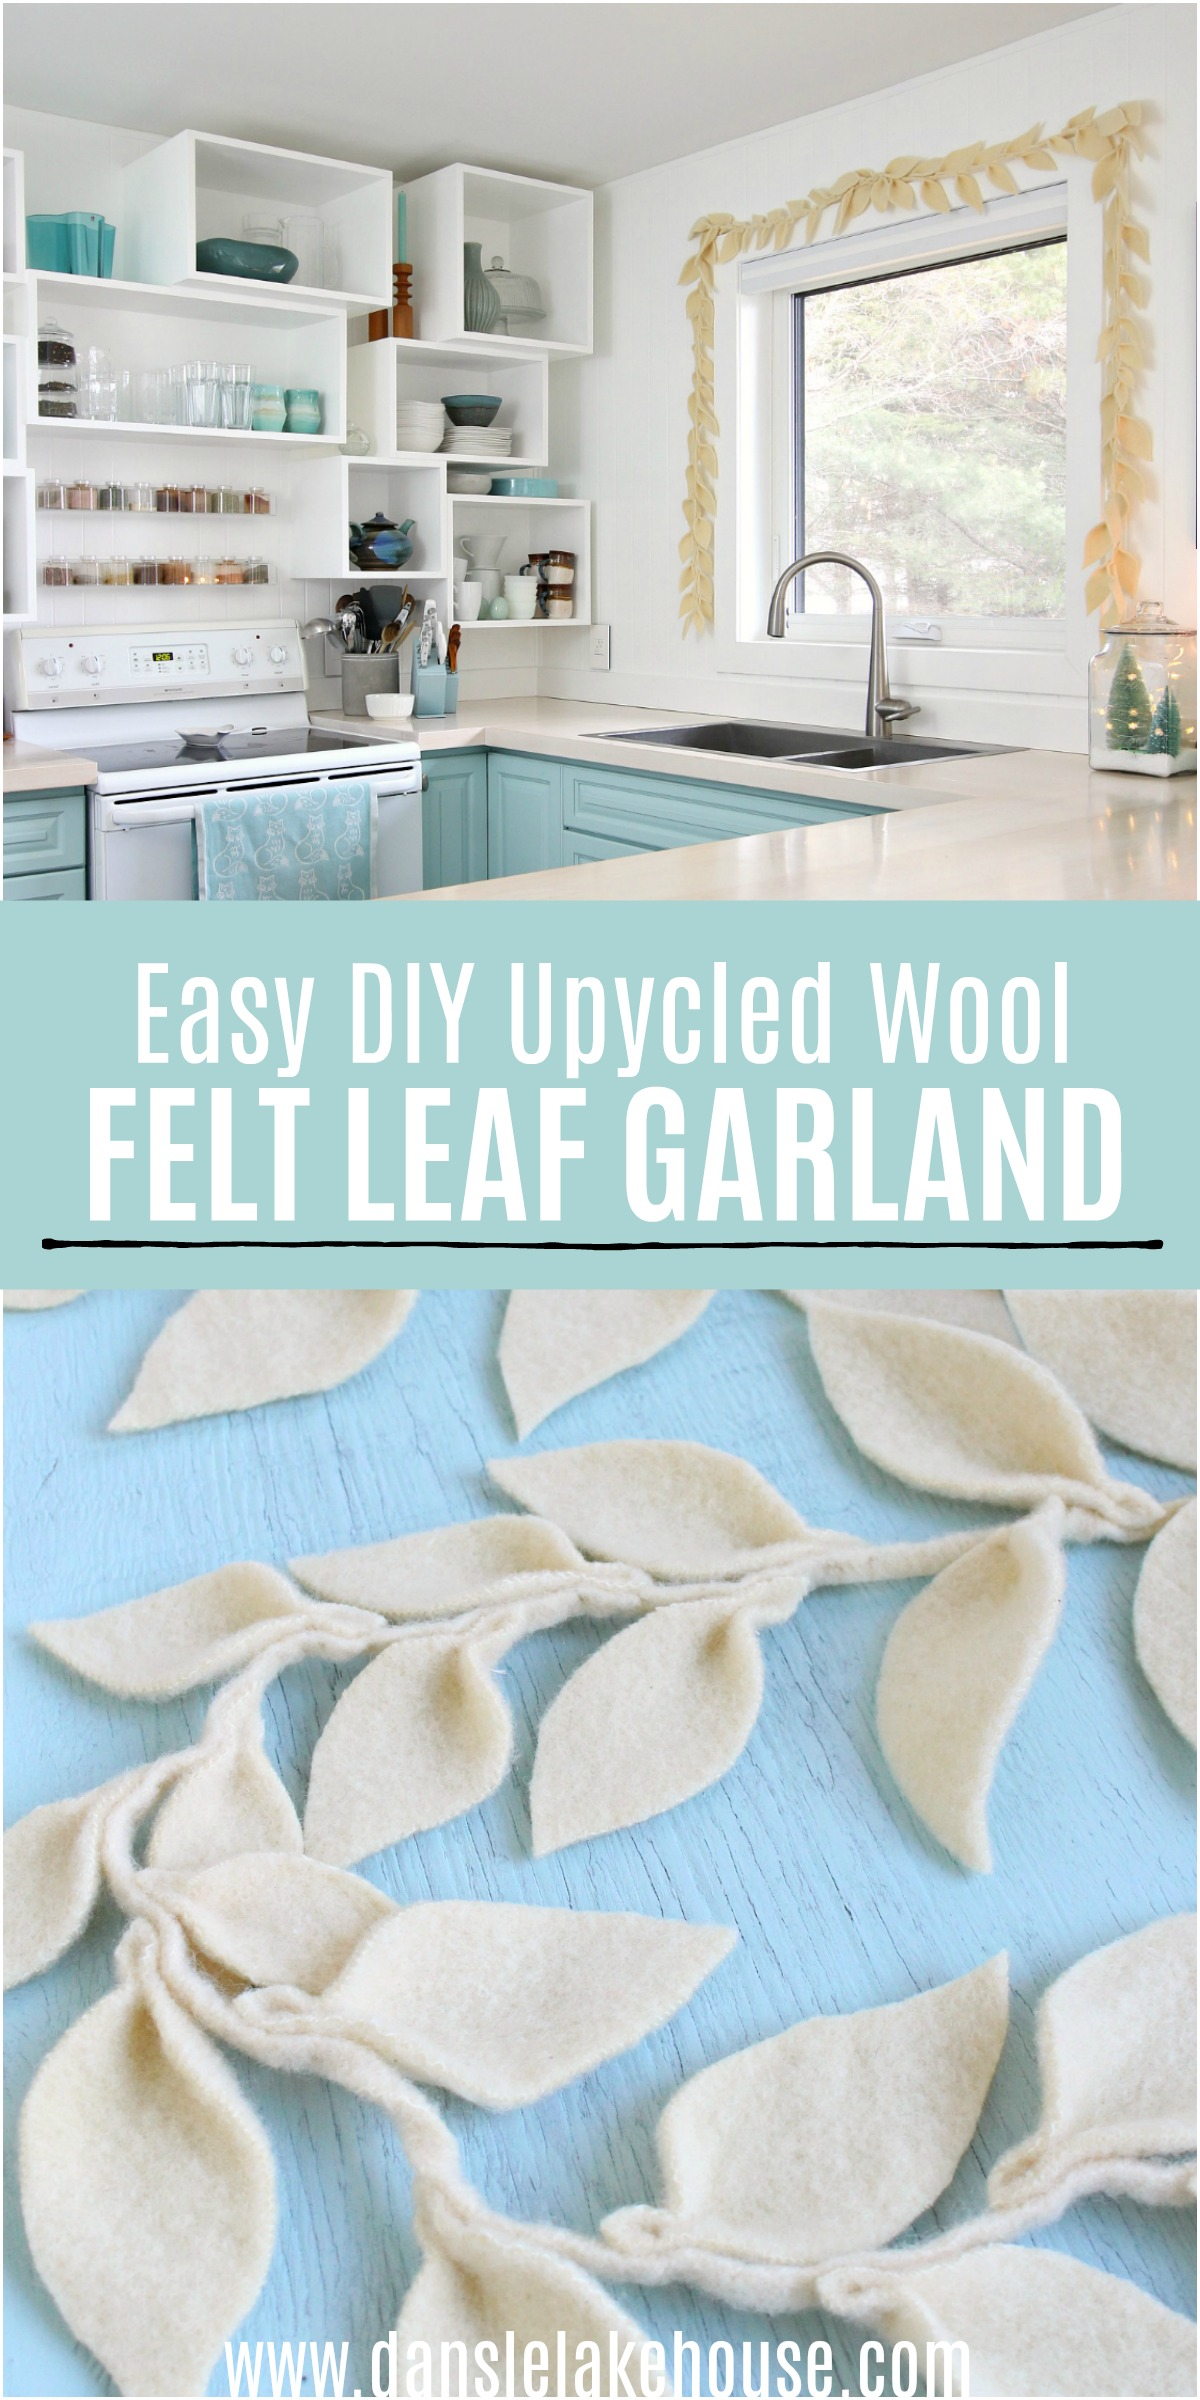 Upcycled Wool DIY Felt Leaf Garland